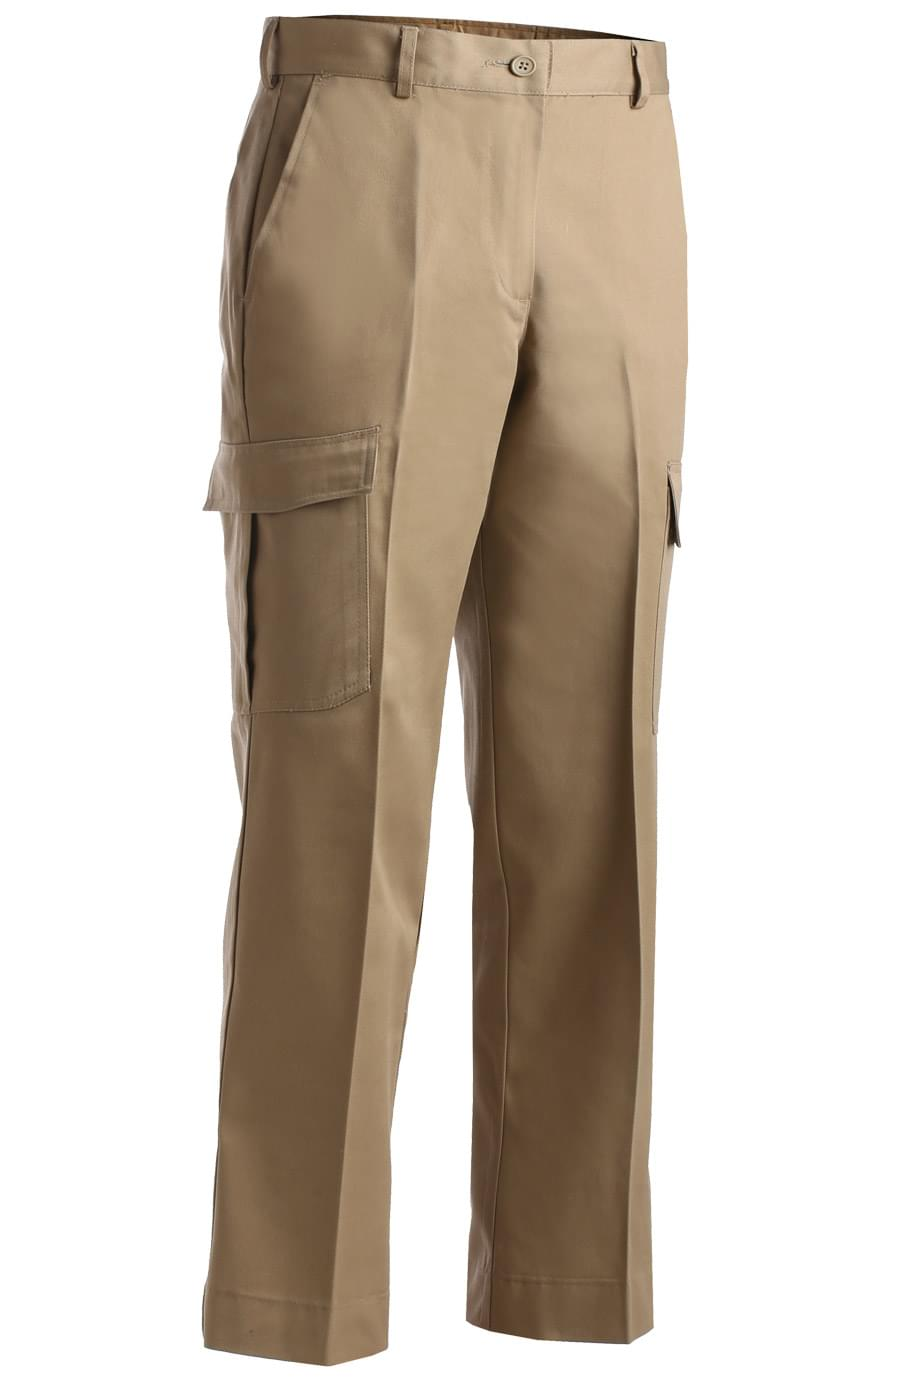 LADIES' UTILITY FLAT FRONT CARGO PANT